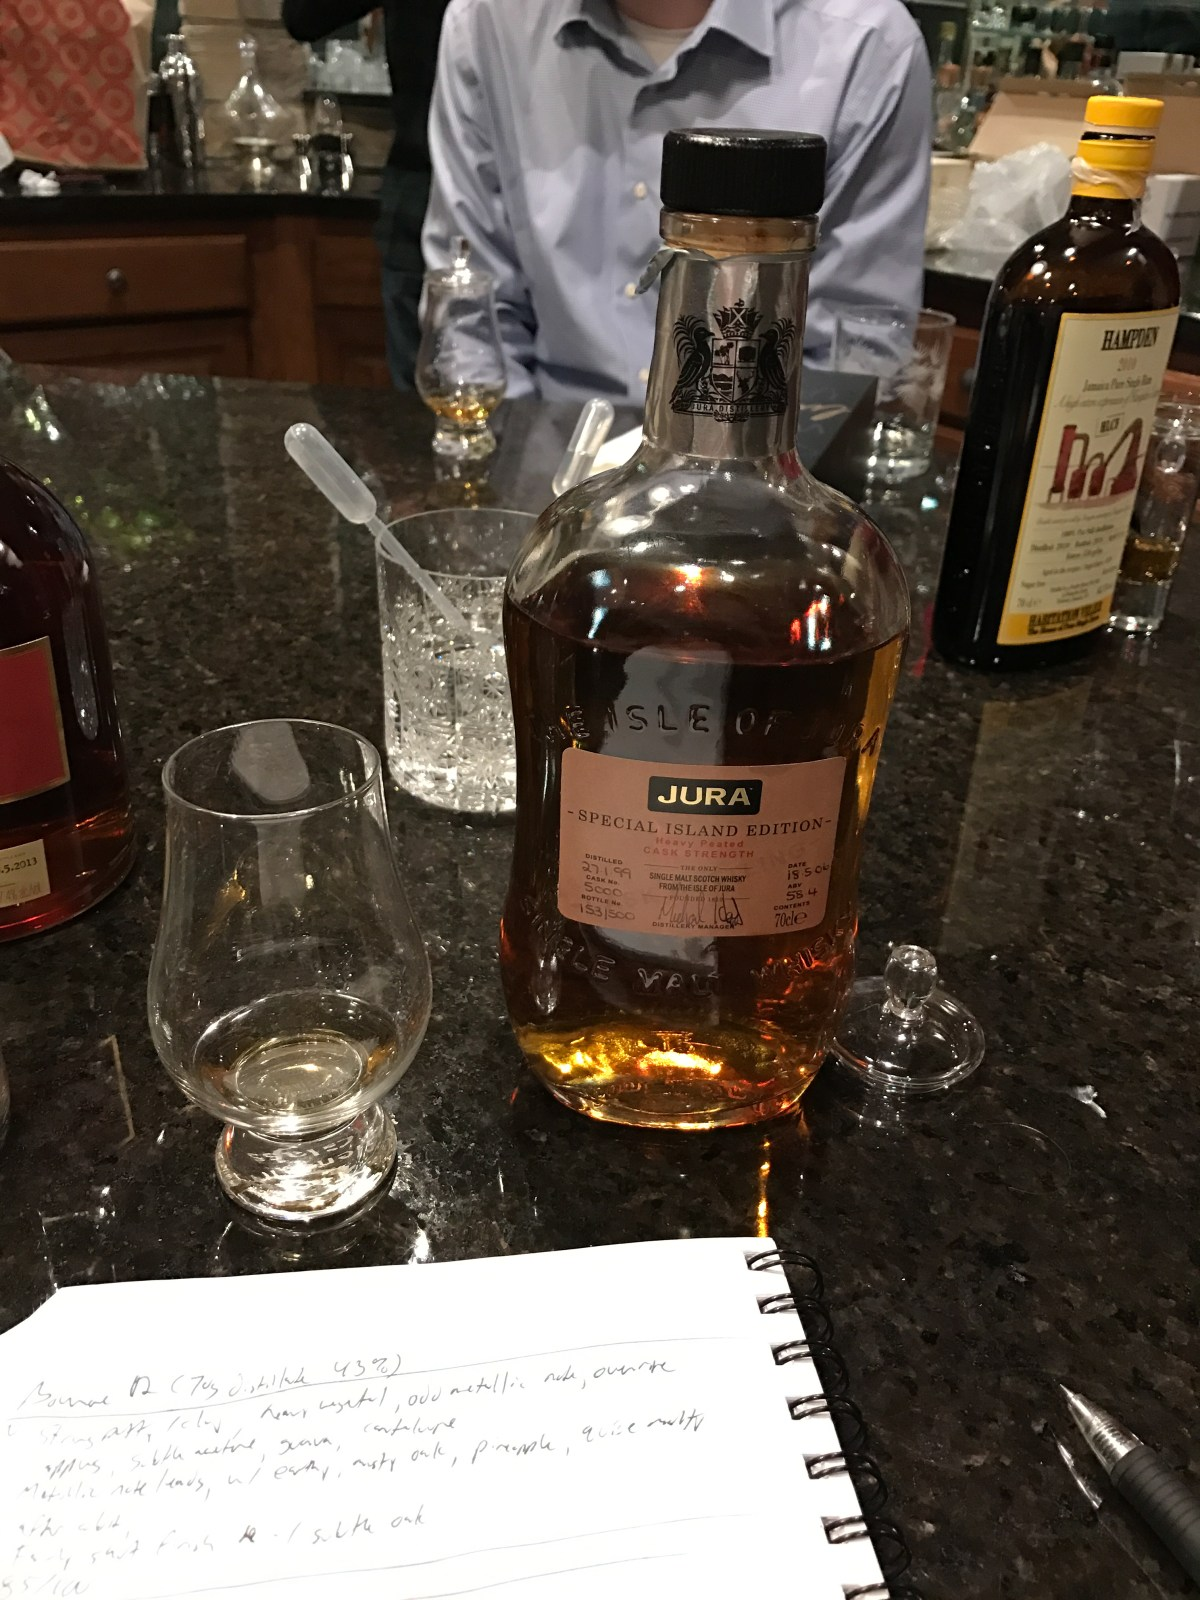 Jura Special Island Edition 1999/2006 Cask #5000 Review